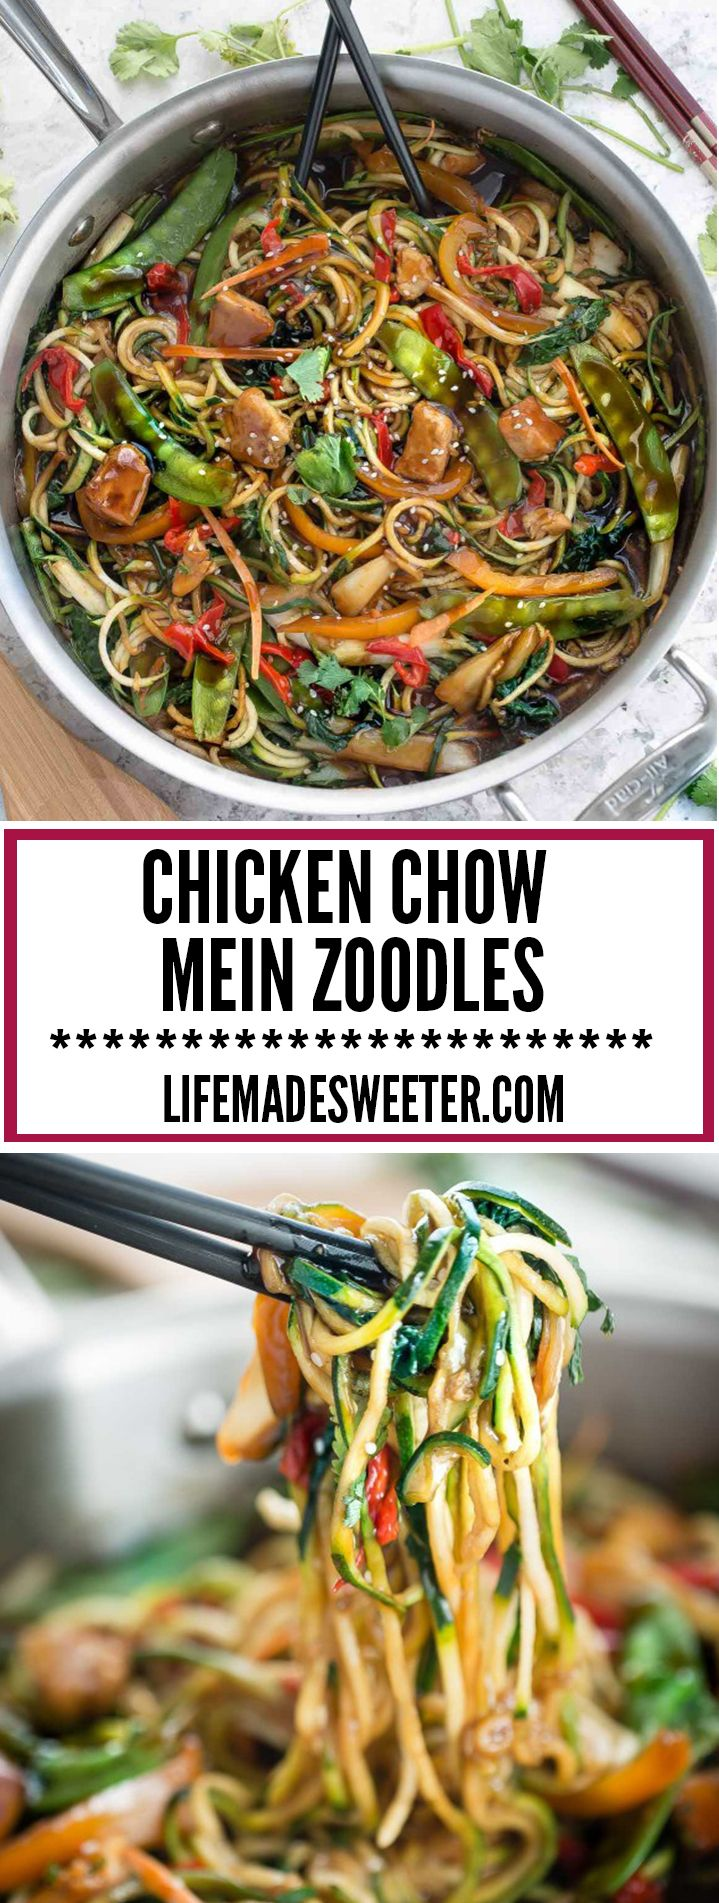 Skinny Chicken Chow Mein Zucchini Noodles (ZOODLES) is the perfect easy weeknight meal. Best of all, takes less than 30 minutes to make in just ONE PAN POT with less dishes to wash. A healthy and flavorful meal that is so much better than takeout!